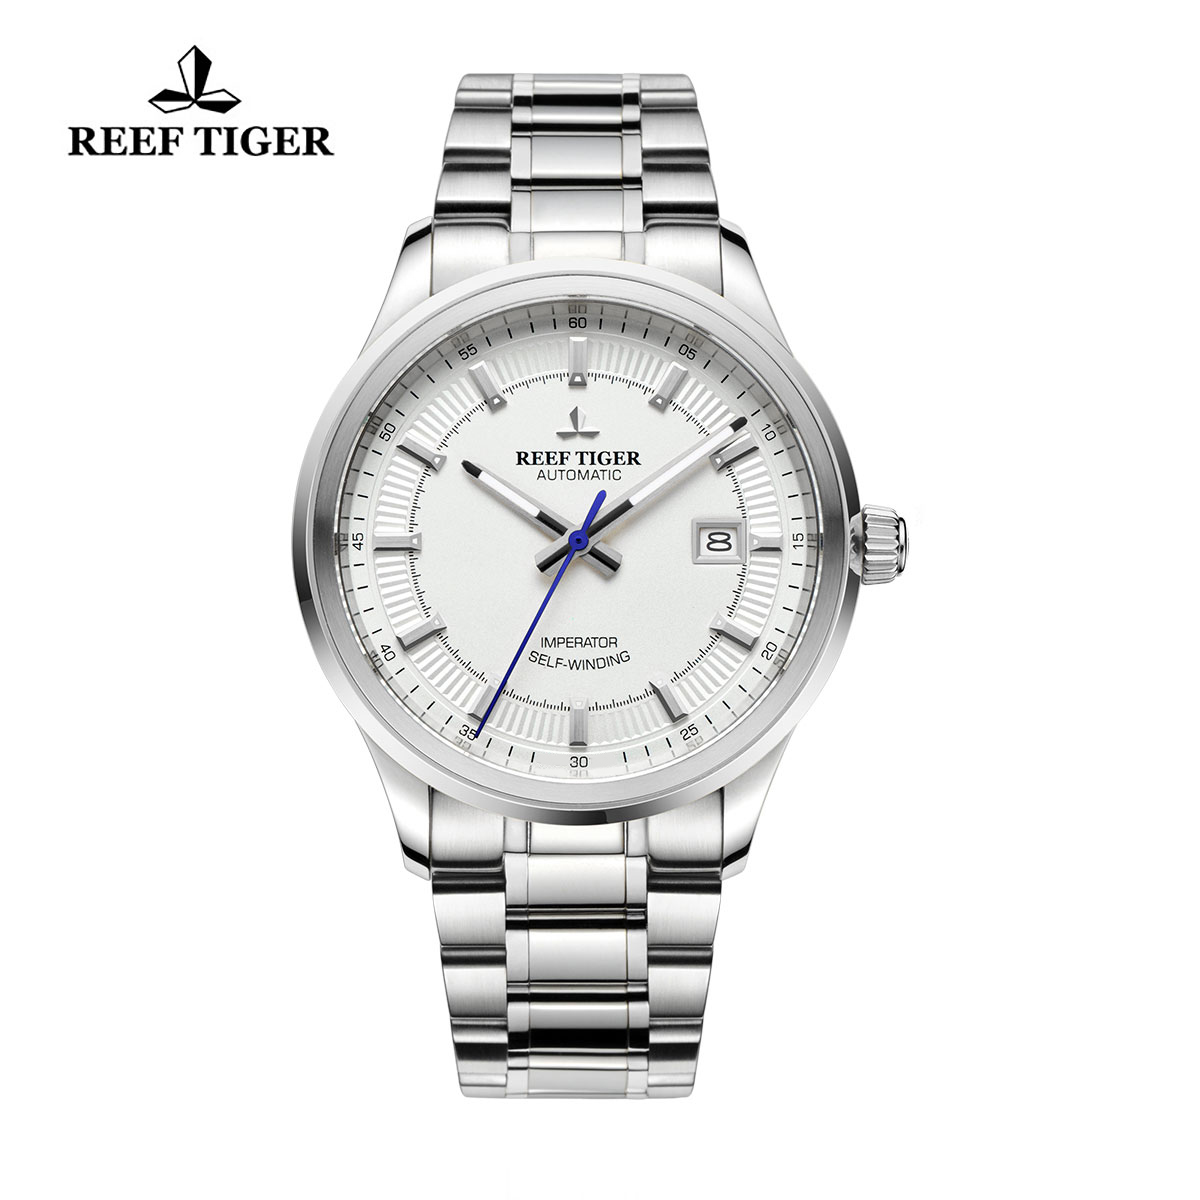 Reef Tiger Imperator Dress Watch Automatic Stainless Steel White Dial RGA8015-YWY